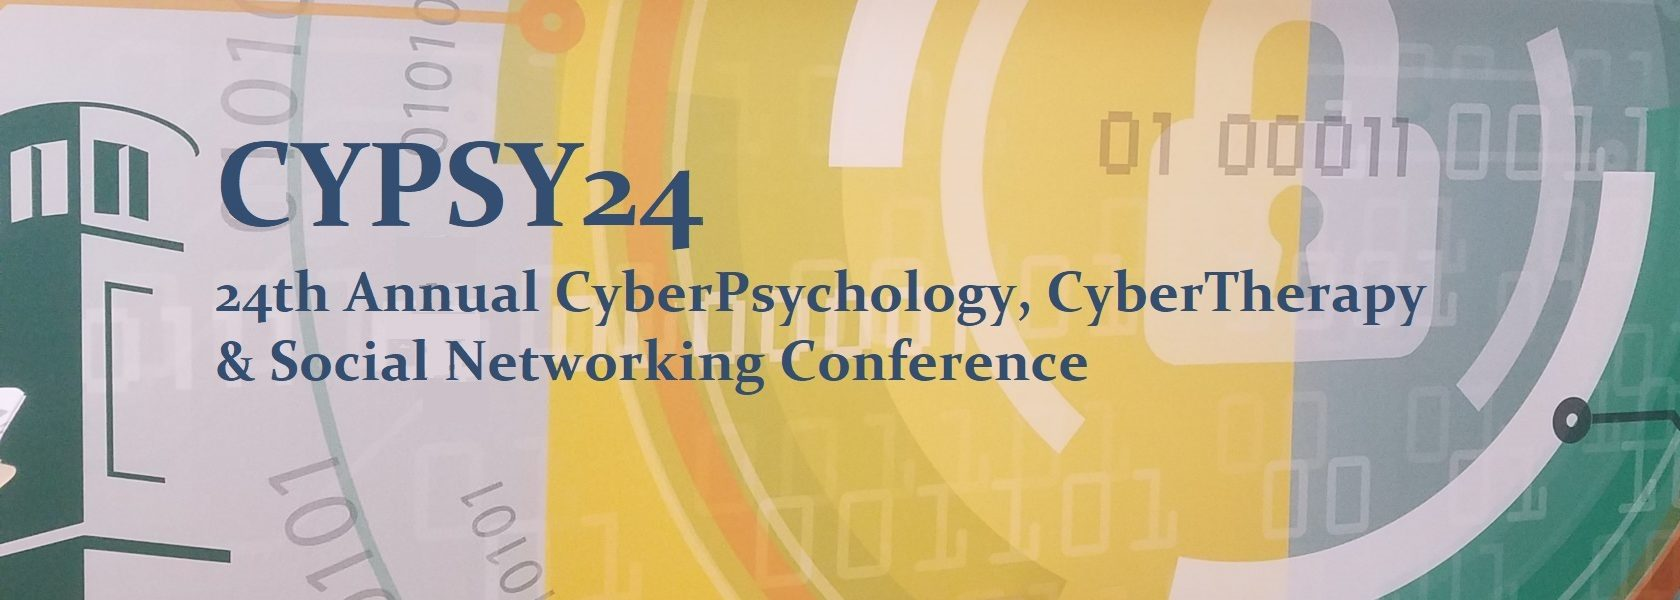 CYPSY24: 24th Annual CyberPsychology, CyberTherapy & Social Networking Conference